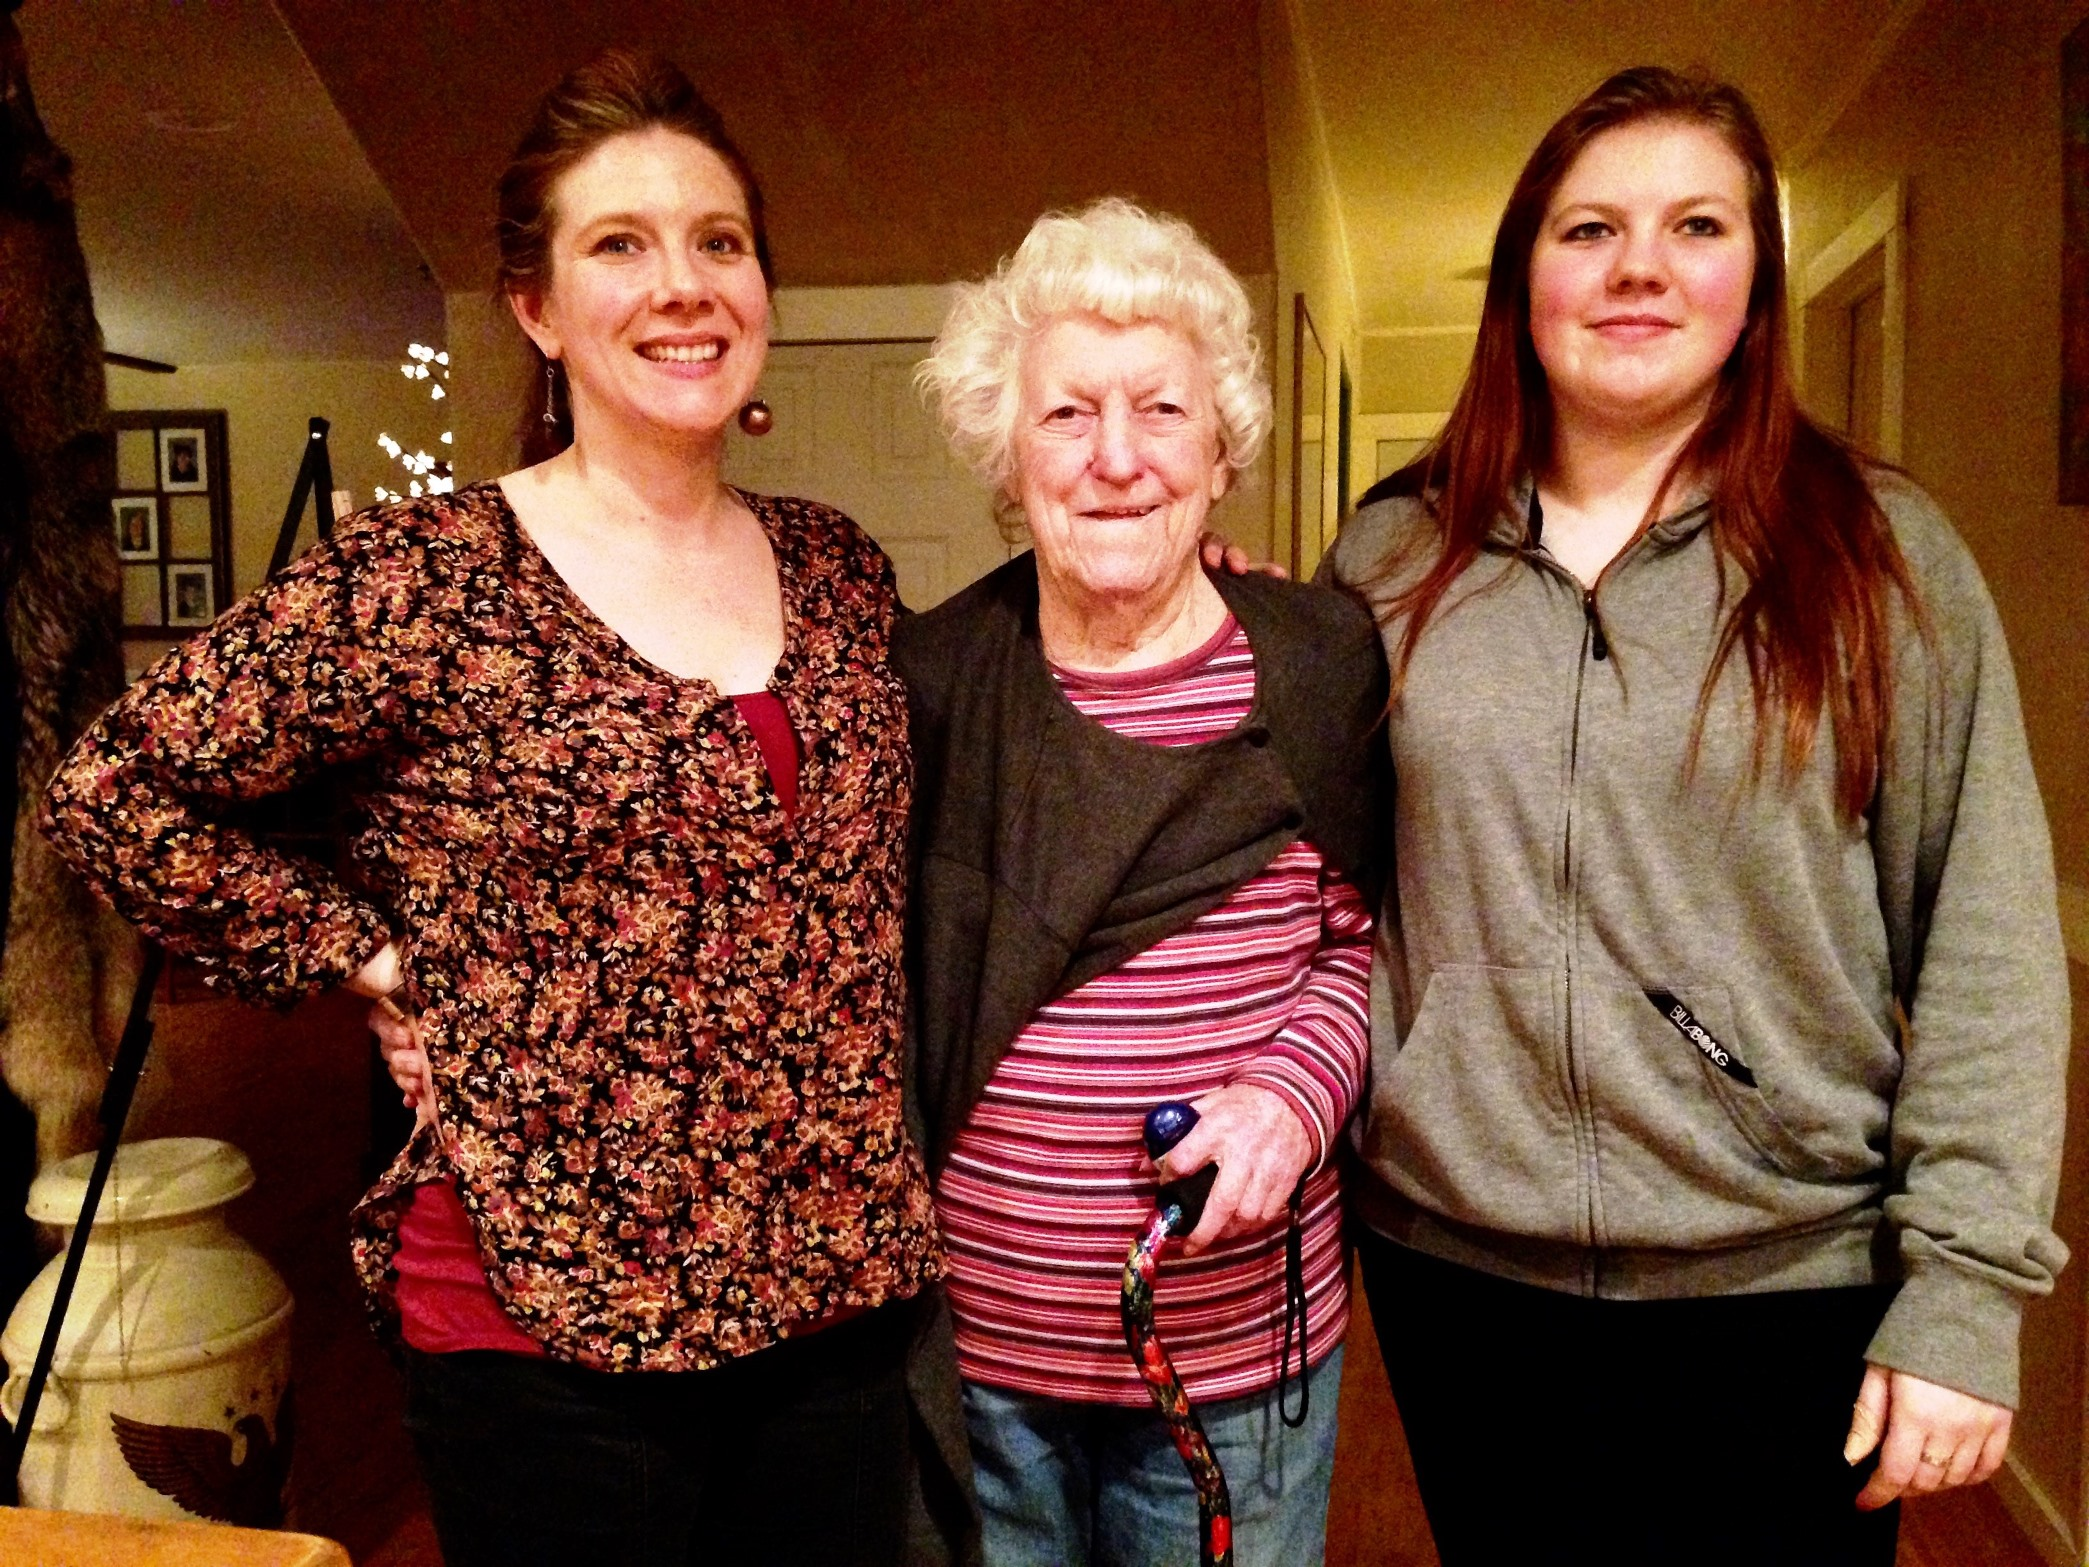 Elizabeth Tyner, 92, lives with her granddaughter, Melinda Cook, left, and great-granddaughter, Shawnee Cook, right. Tyner is among Southeast seniors aging at home. (Photo by Angela Denning/KFSK)